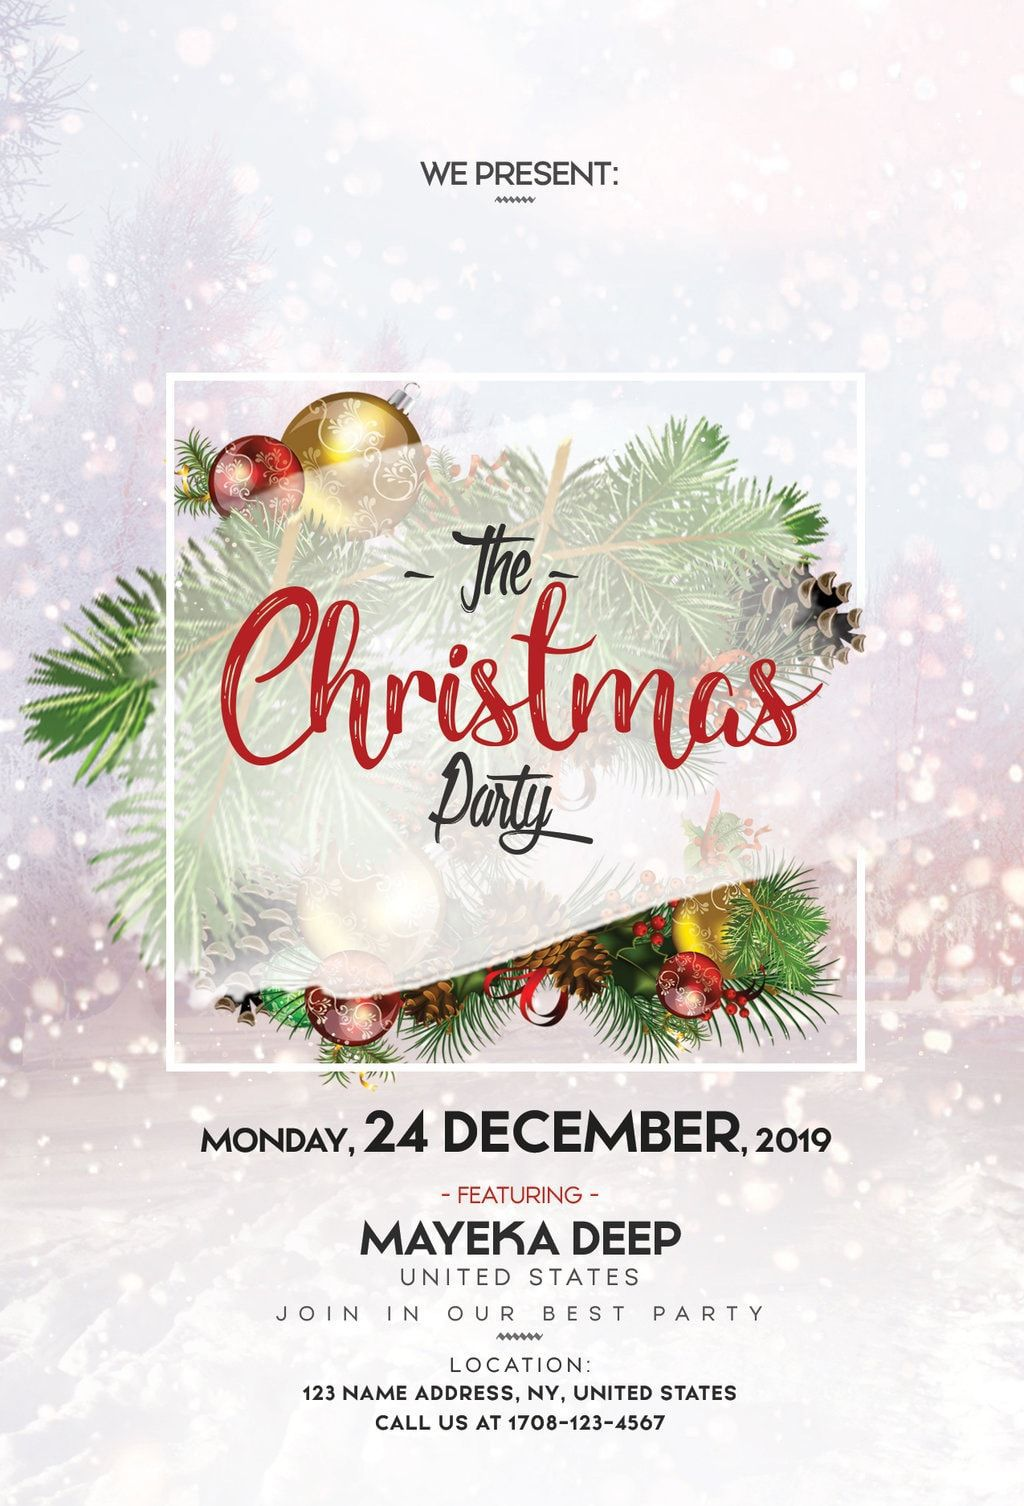 004 Staggering Free Christma Poster Template High Def  Templates Psd Download Design WordFull